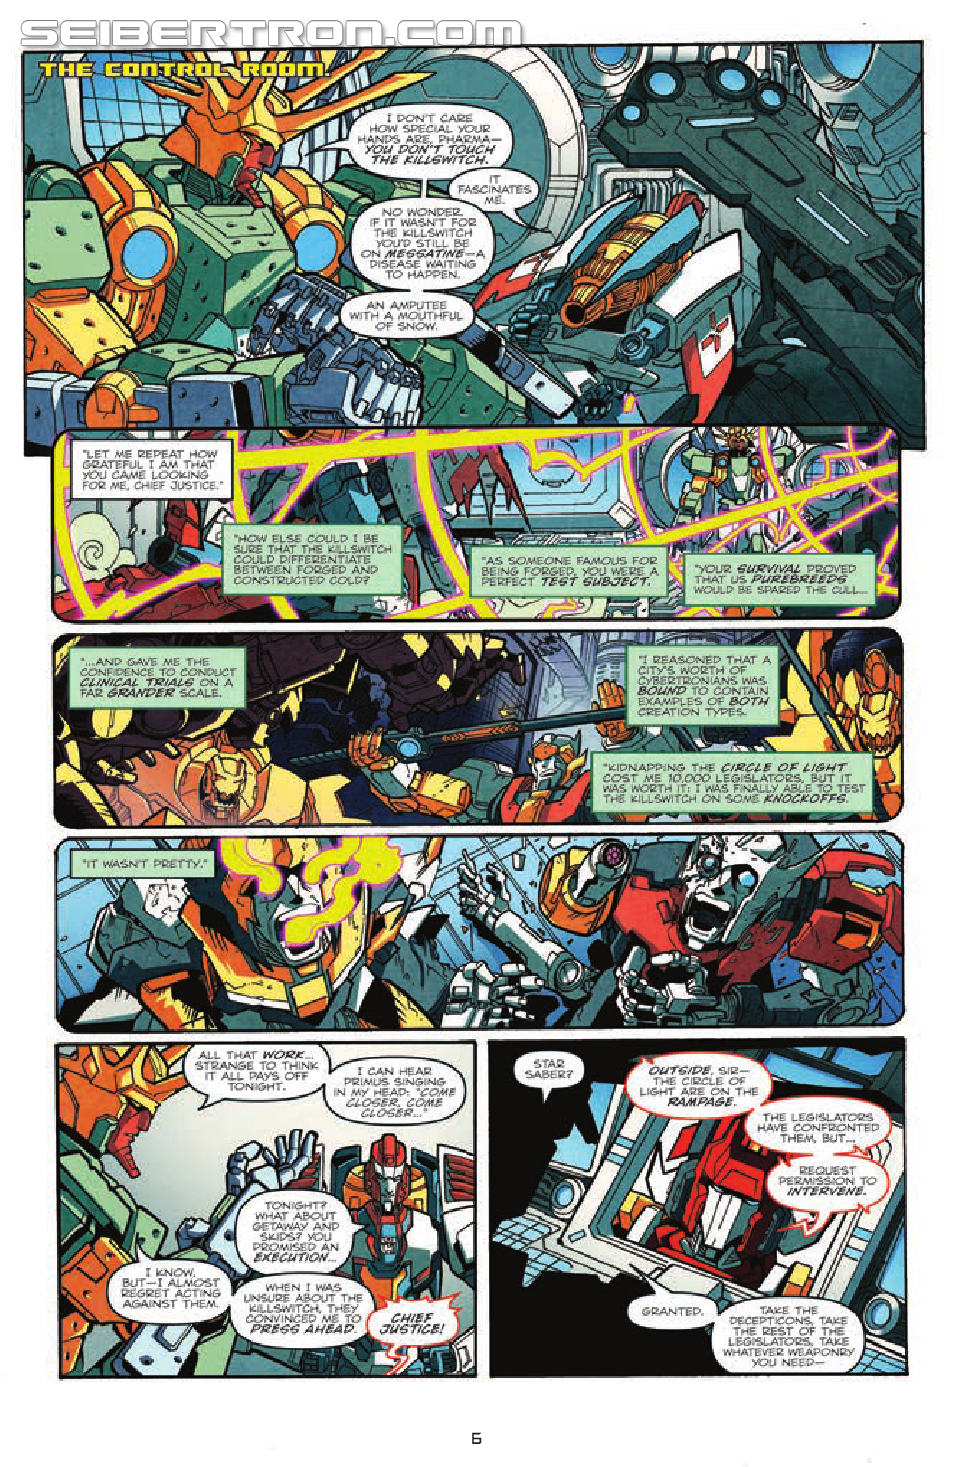 Transformers: More Than Meets The Eye Ongoing #20 Preview